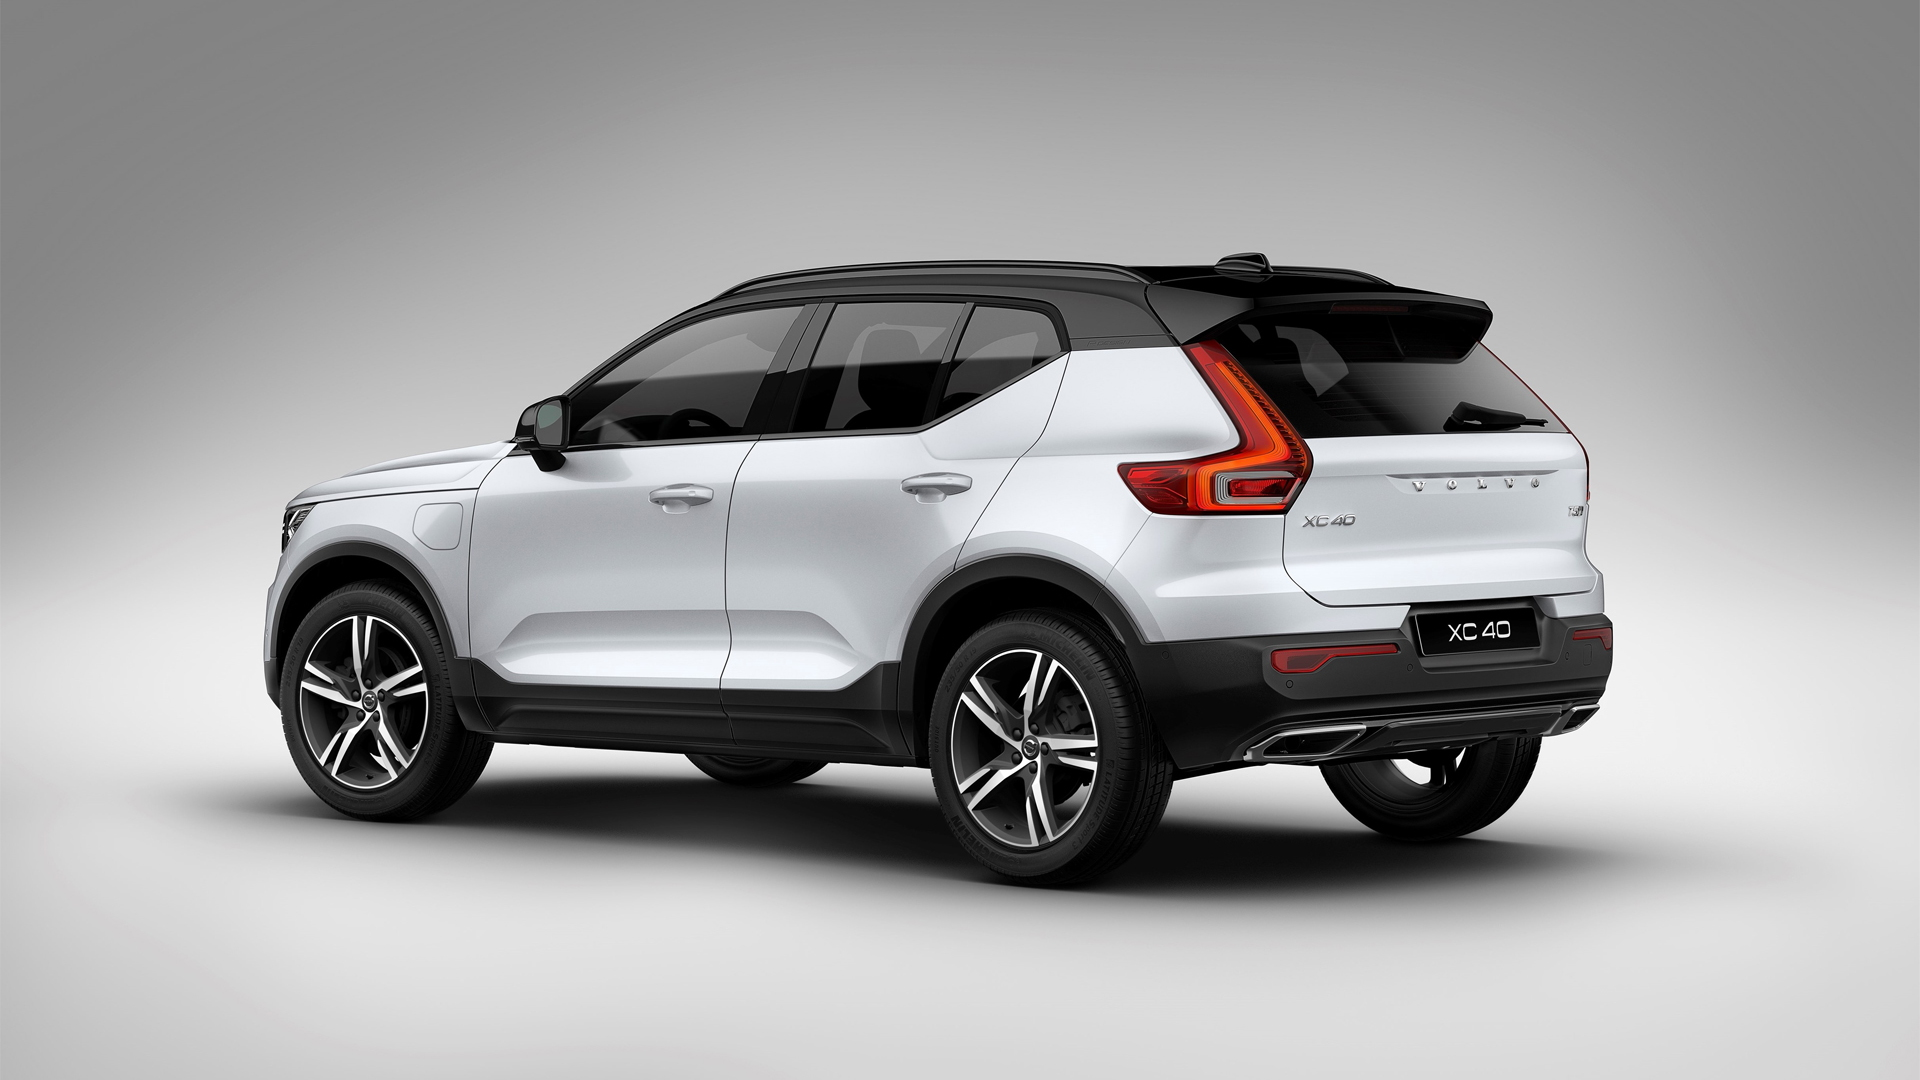 2020 Volvo XC40 PHEV Arrives In The UK, Still No Concrete